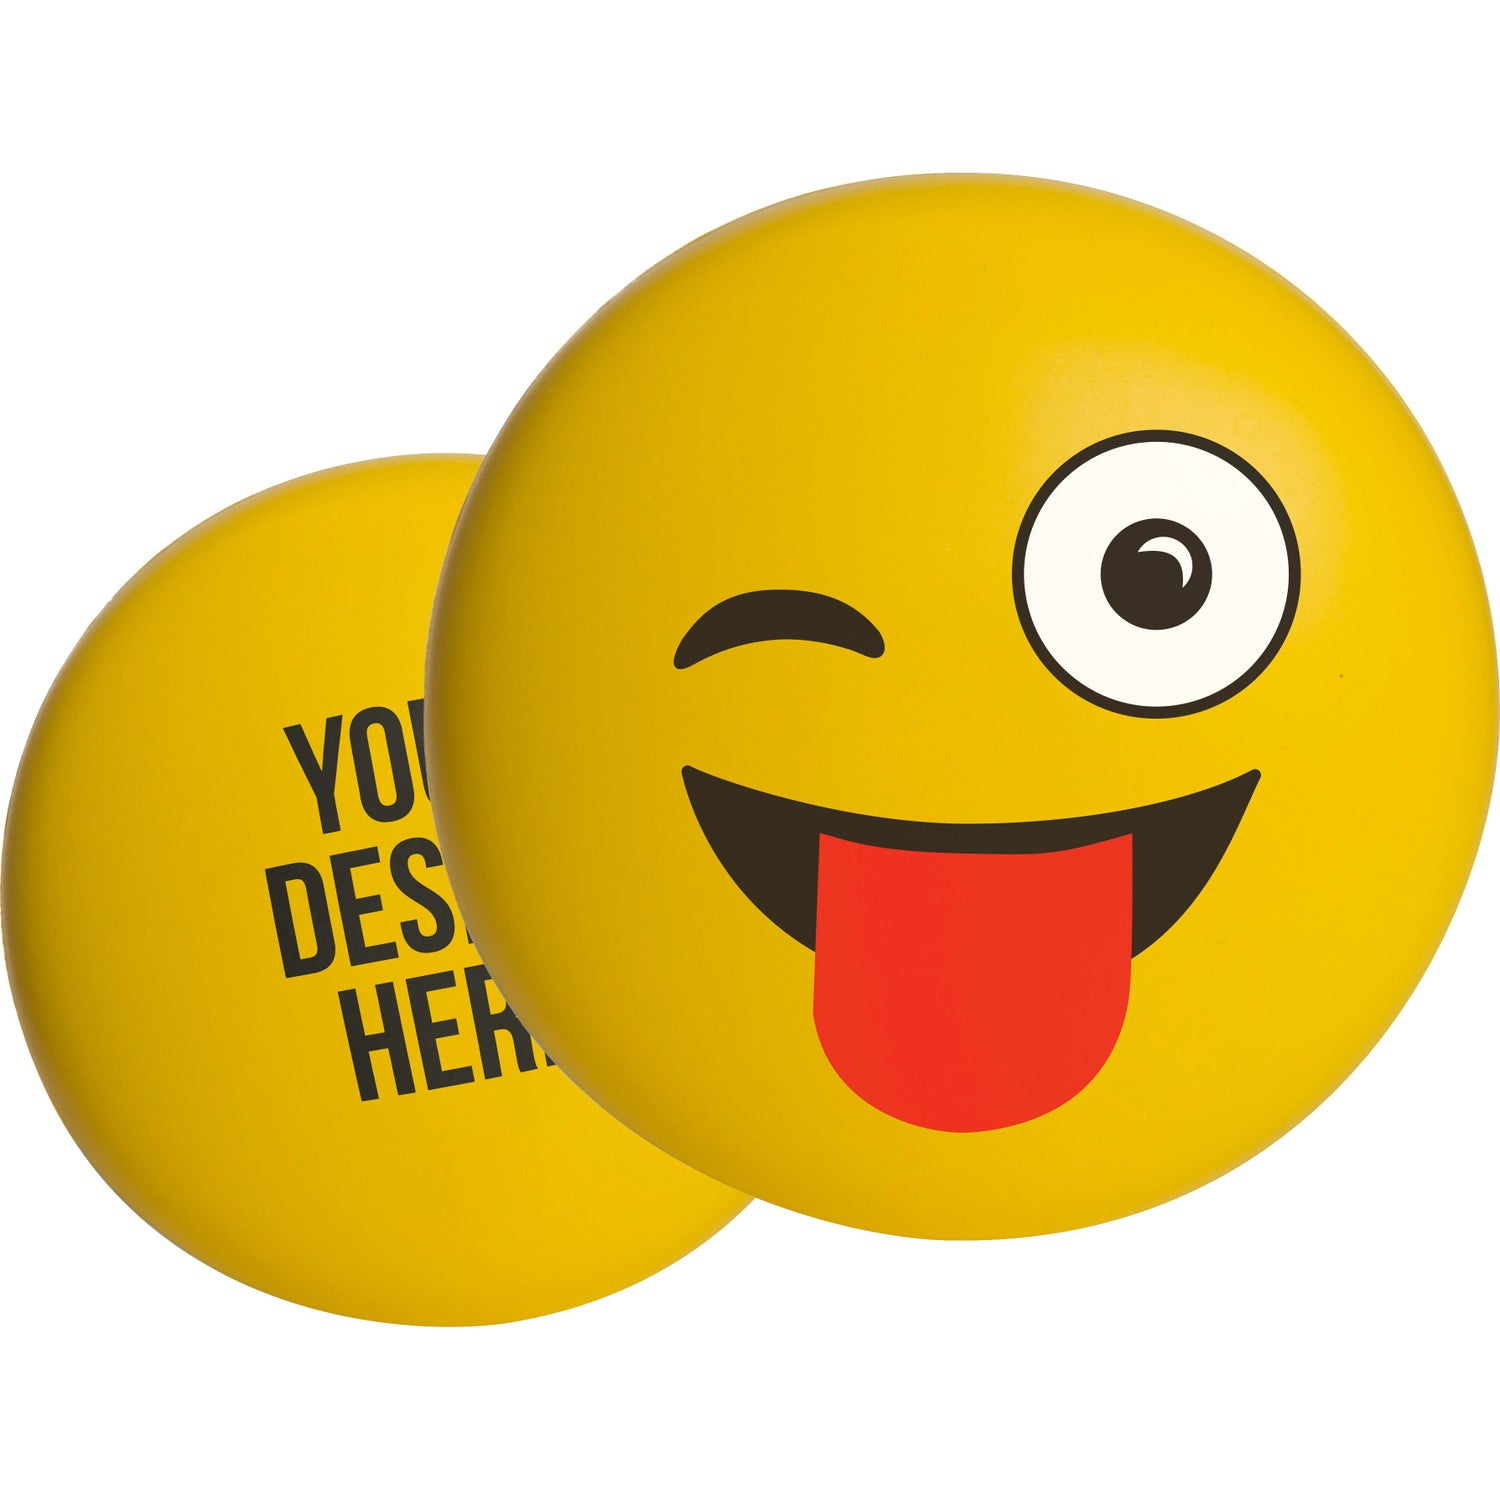 wink black singles 😉 winking face a yellow face with a slight, partially open smile and its left eye winking (right on whatsapp) signals a joke, flirtation,  🛍 black friday.